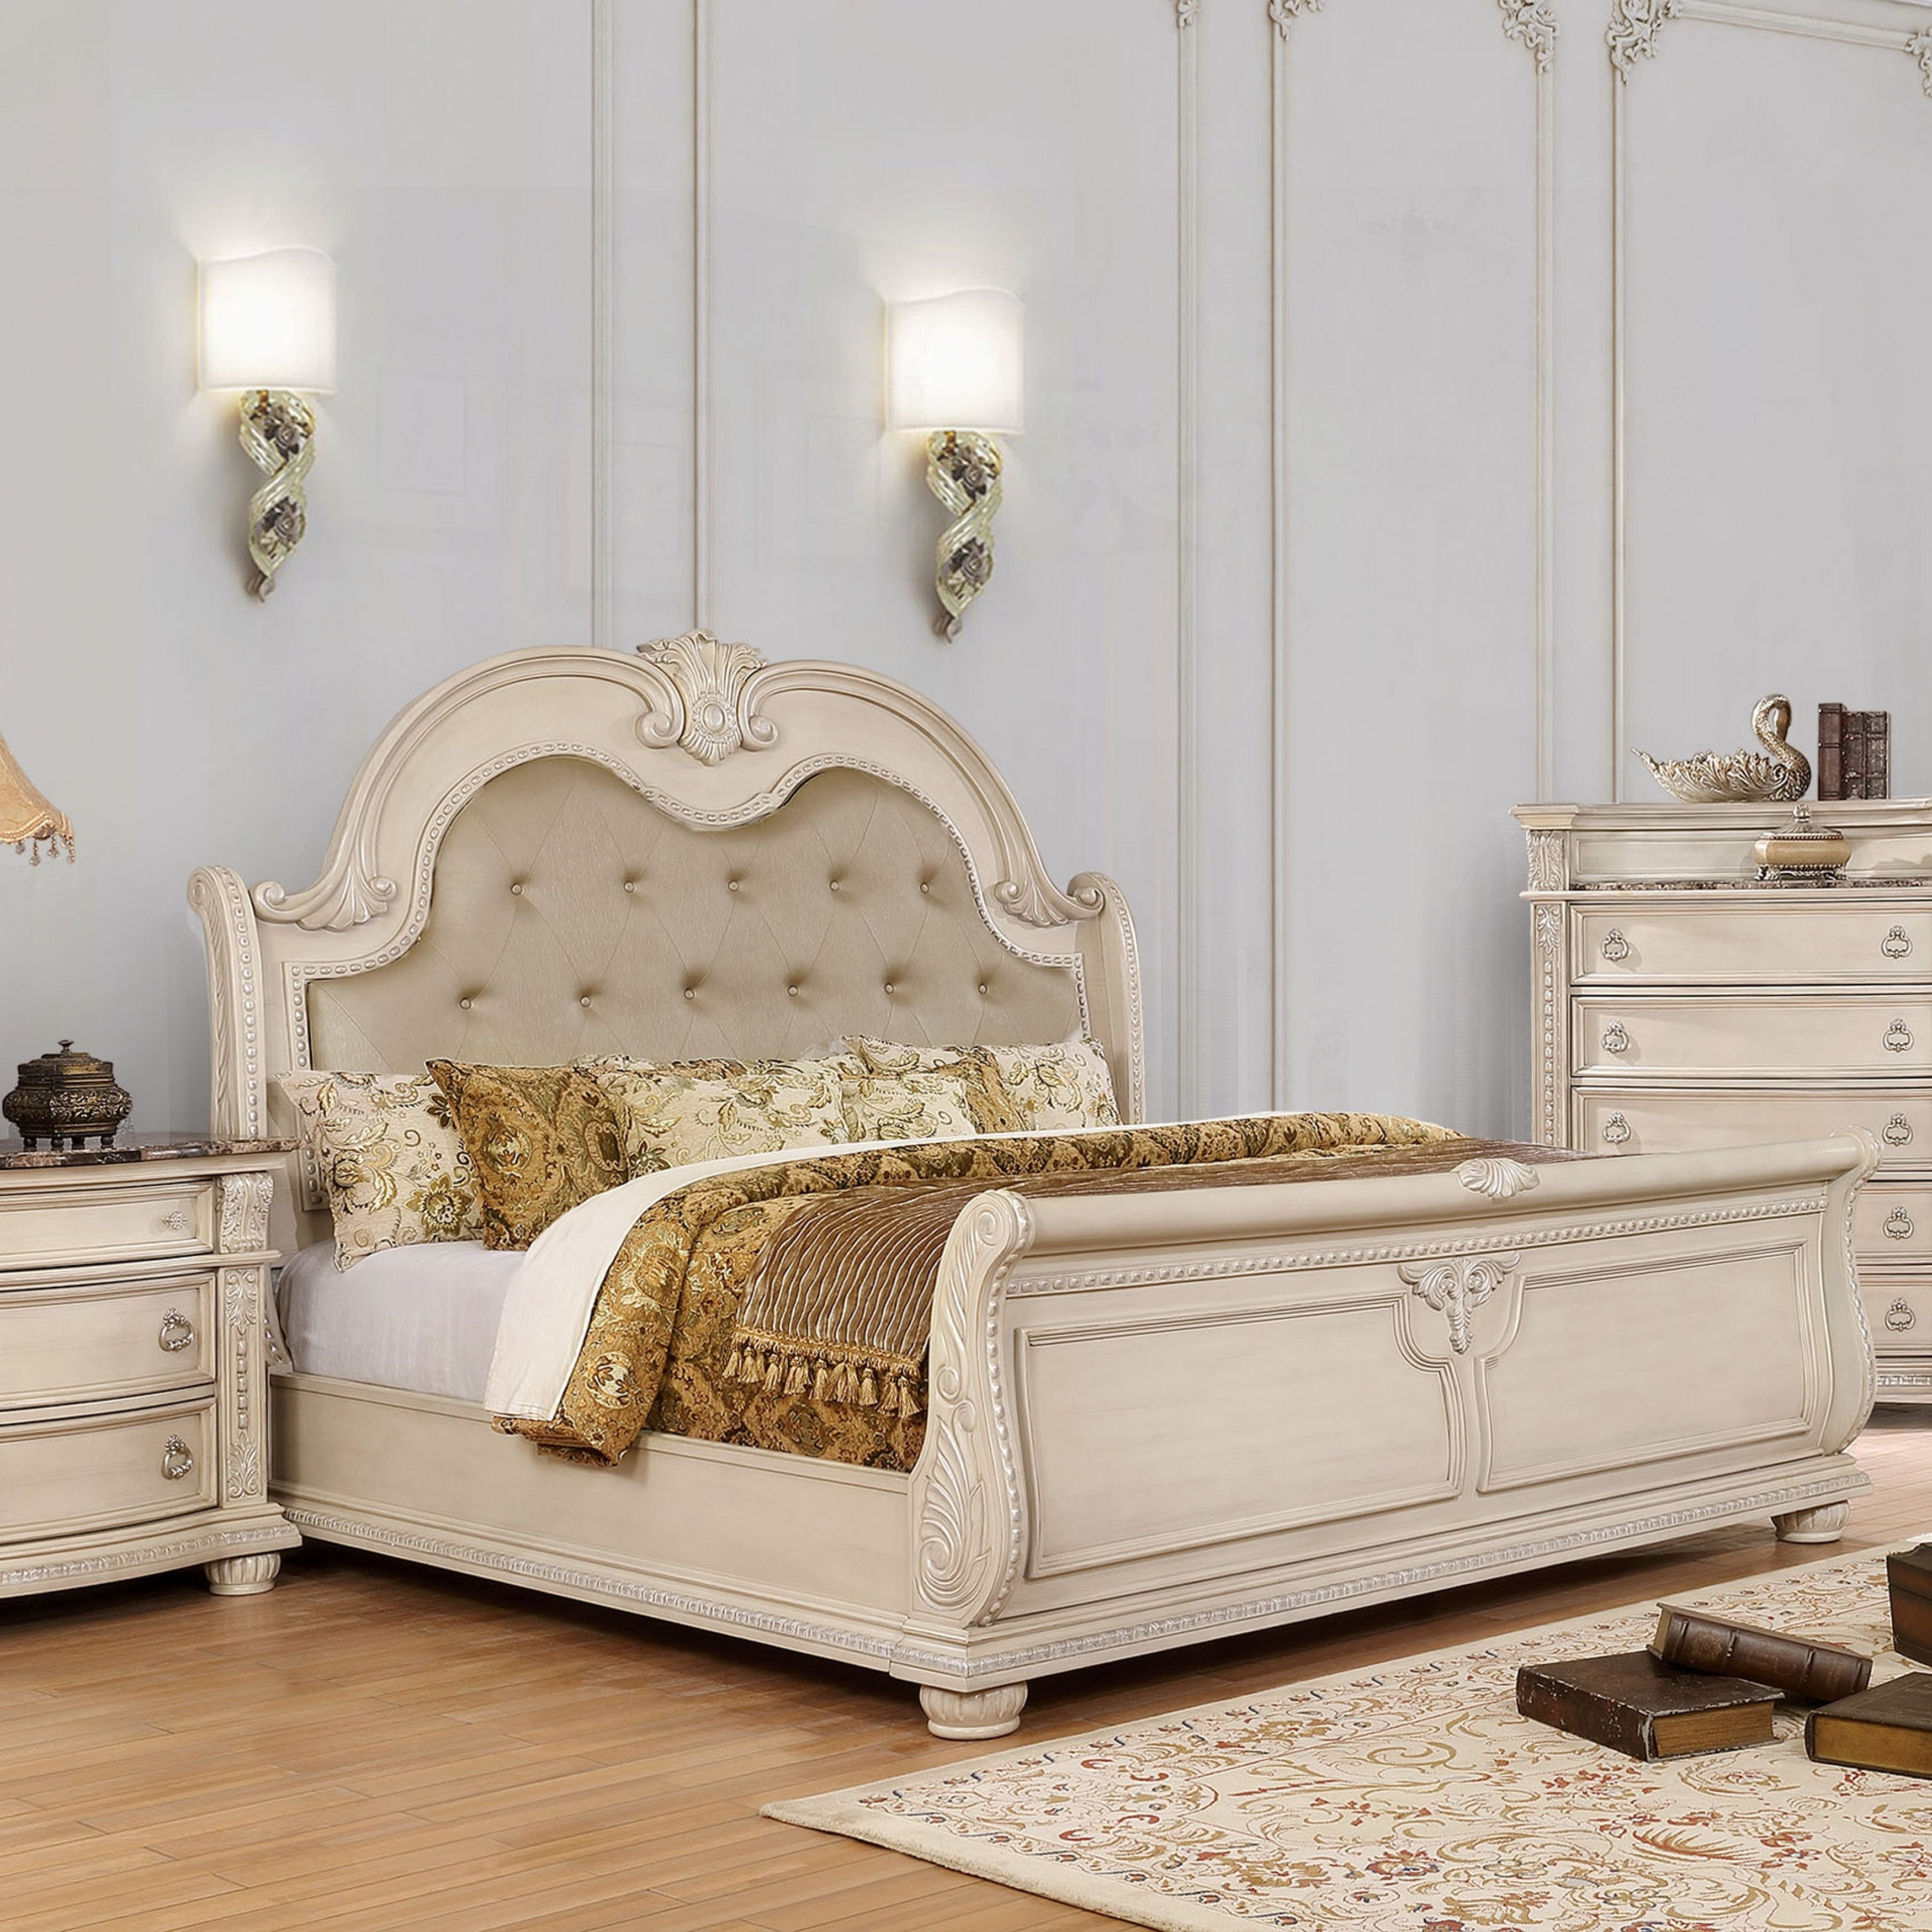 Shop Black Friday Deals On Furniture Of America Boss Traditional White Faux Leather Panel Bed On Sale Overstock 25324517